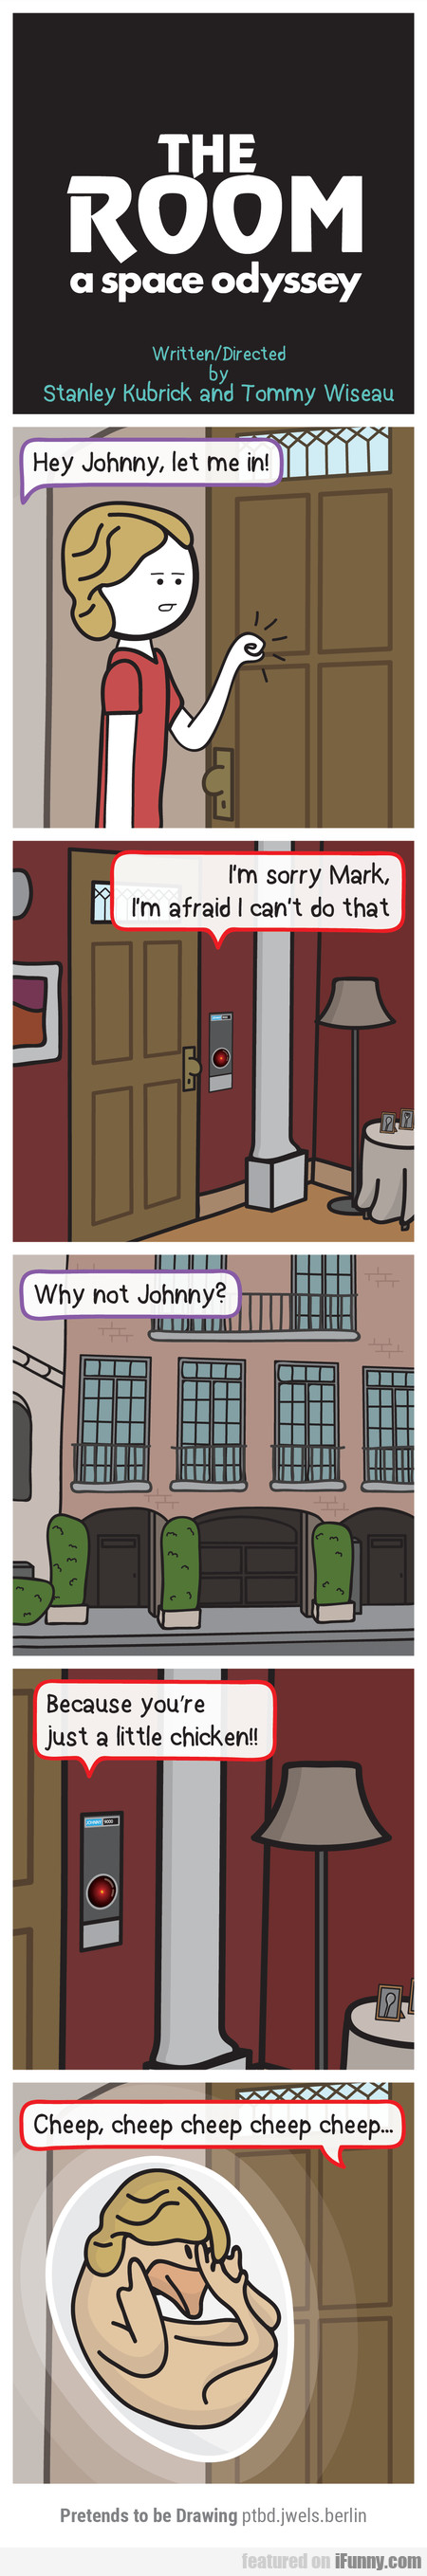 The Room - A Space Odyssey - Hey Johnny, Let Me In